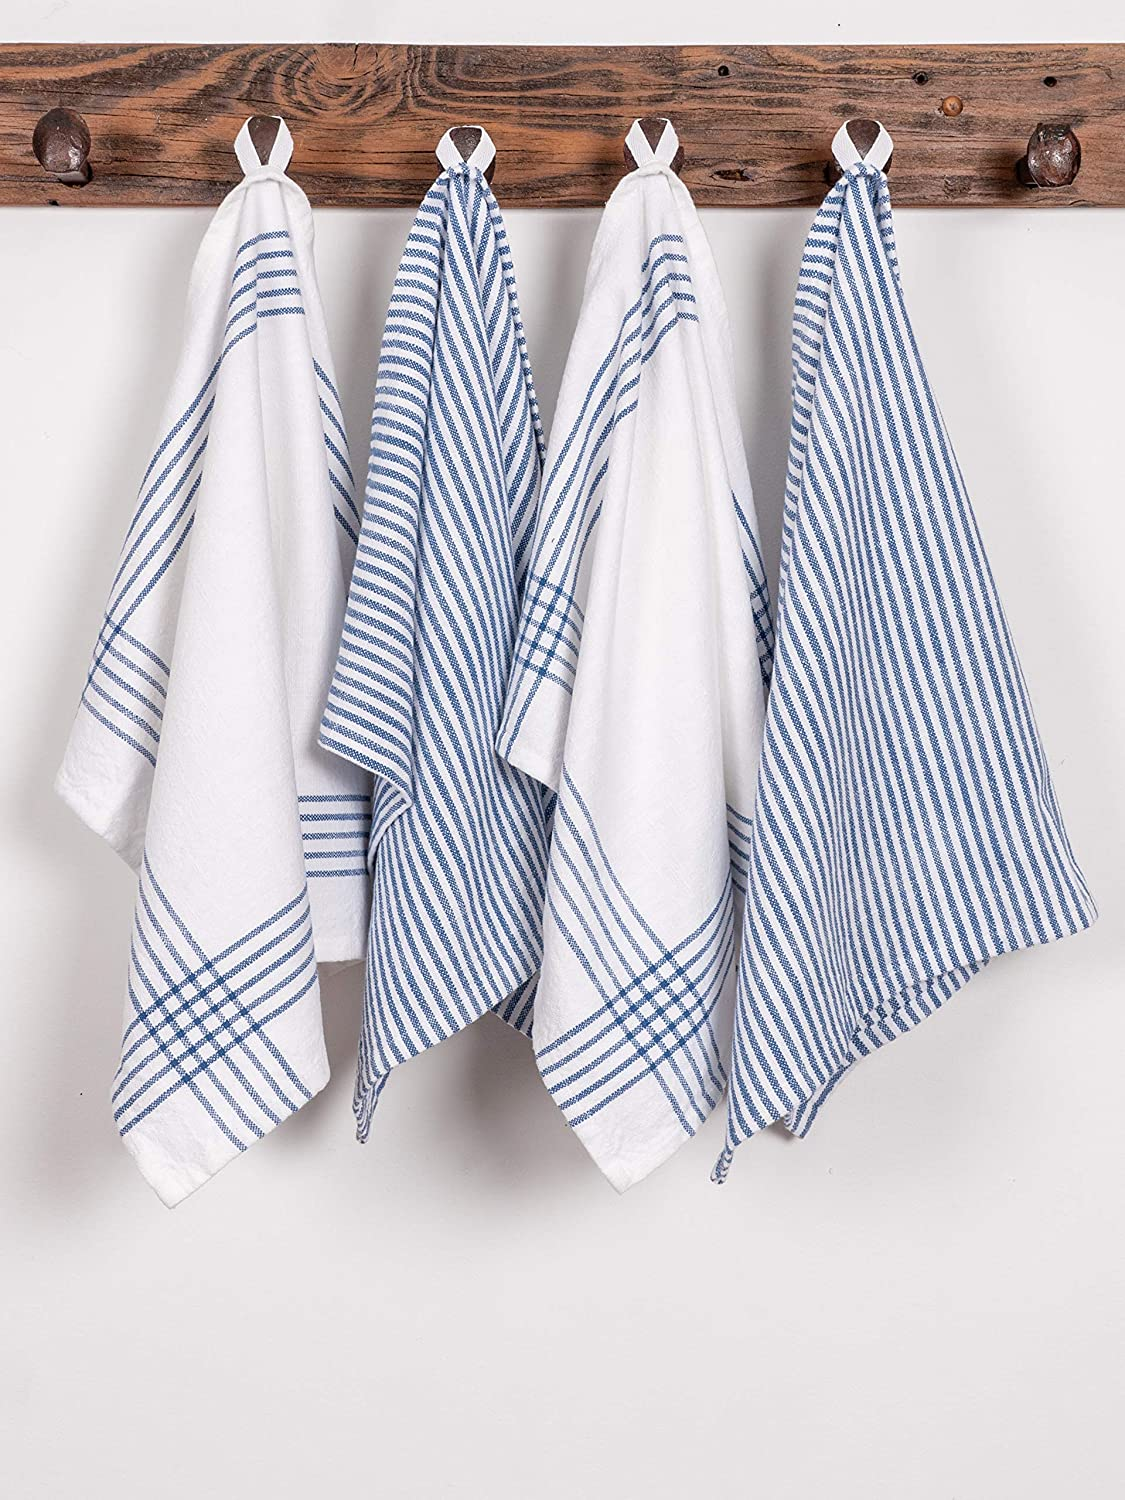 Soft and Absorbent Farmhouse Kitchen Towel Blue 18 x 28 Inches 100/% Cotton Dish Towel KAF Home Set of 4 Monaco Relaxed Casual Slubbed Kitchen Towel Set of 4